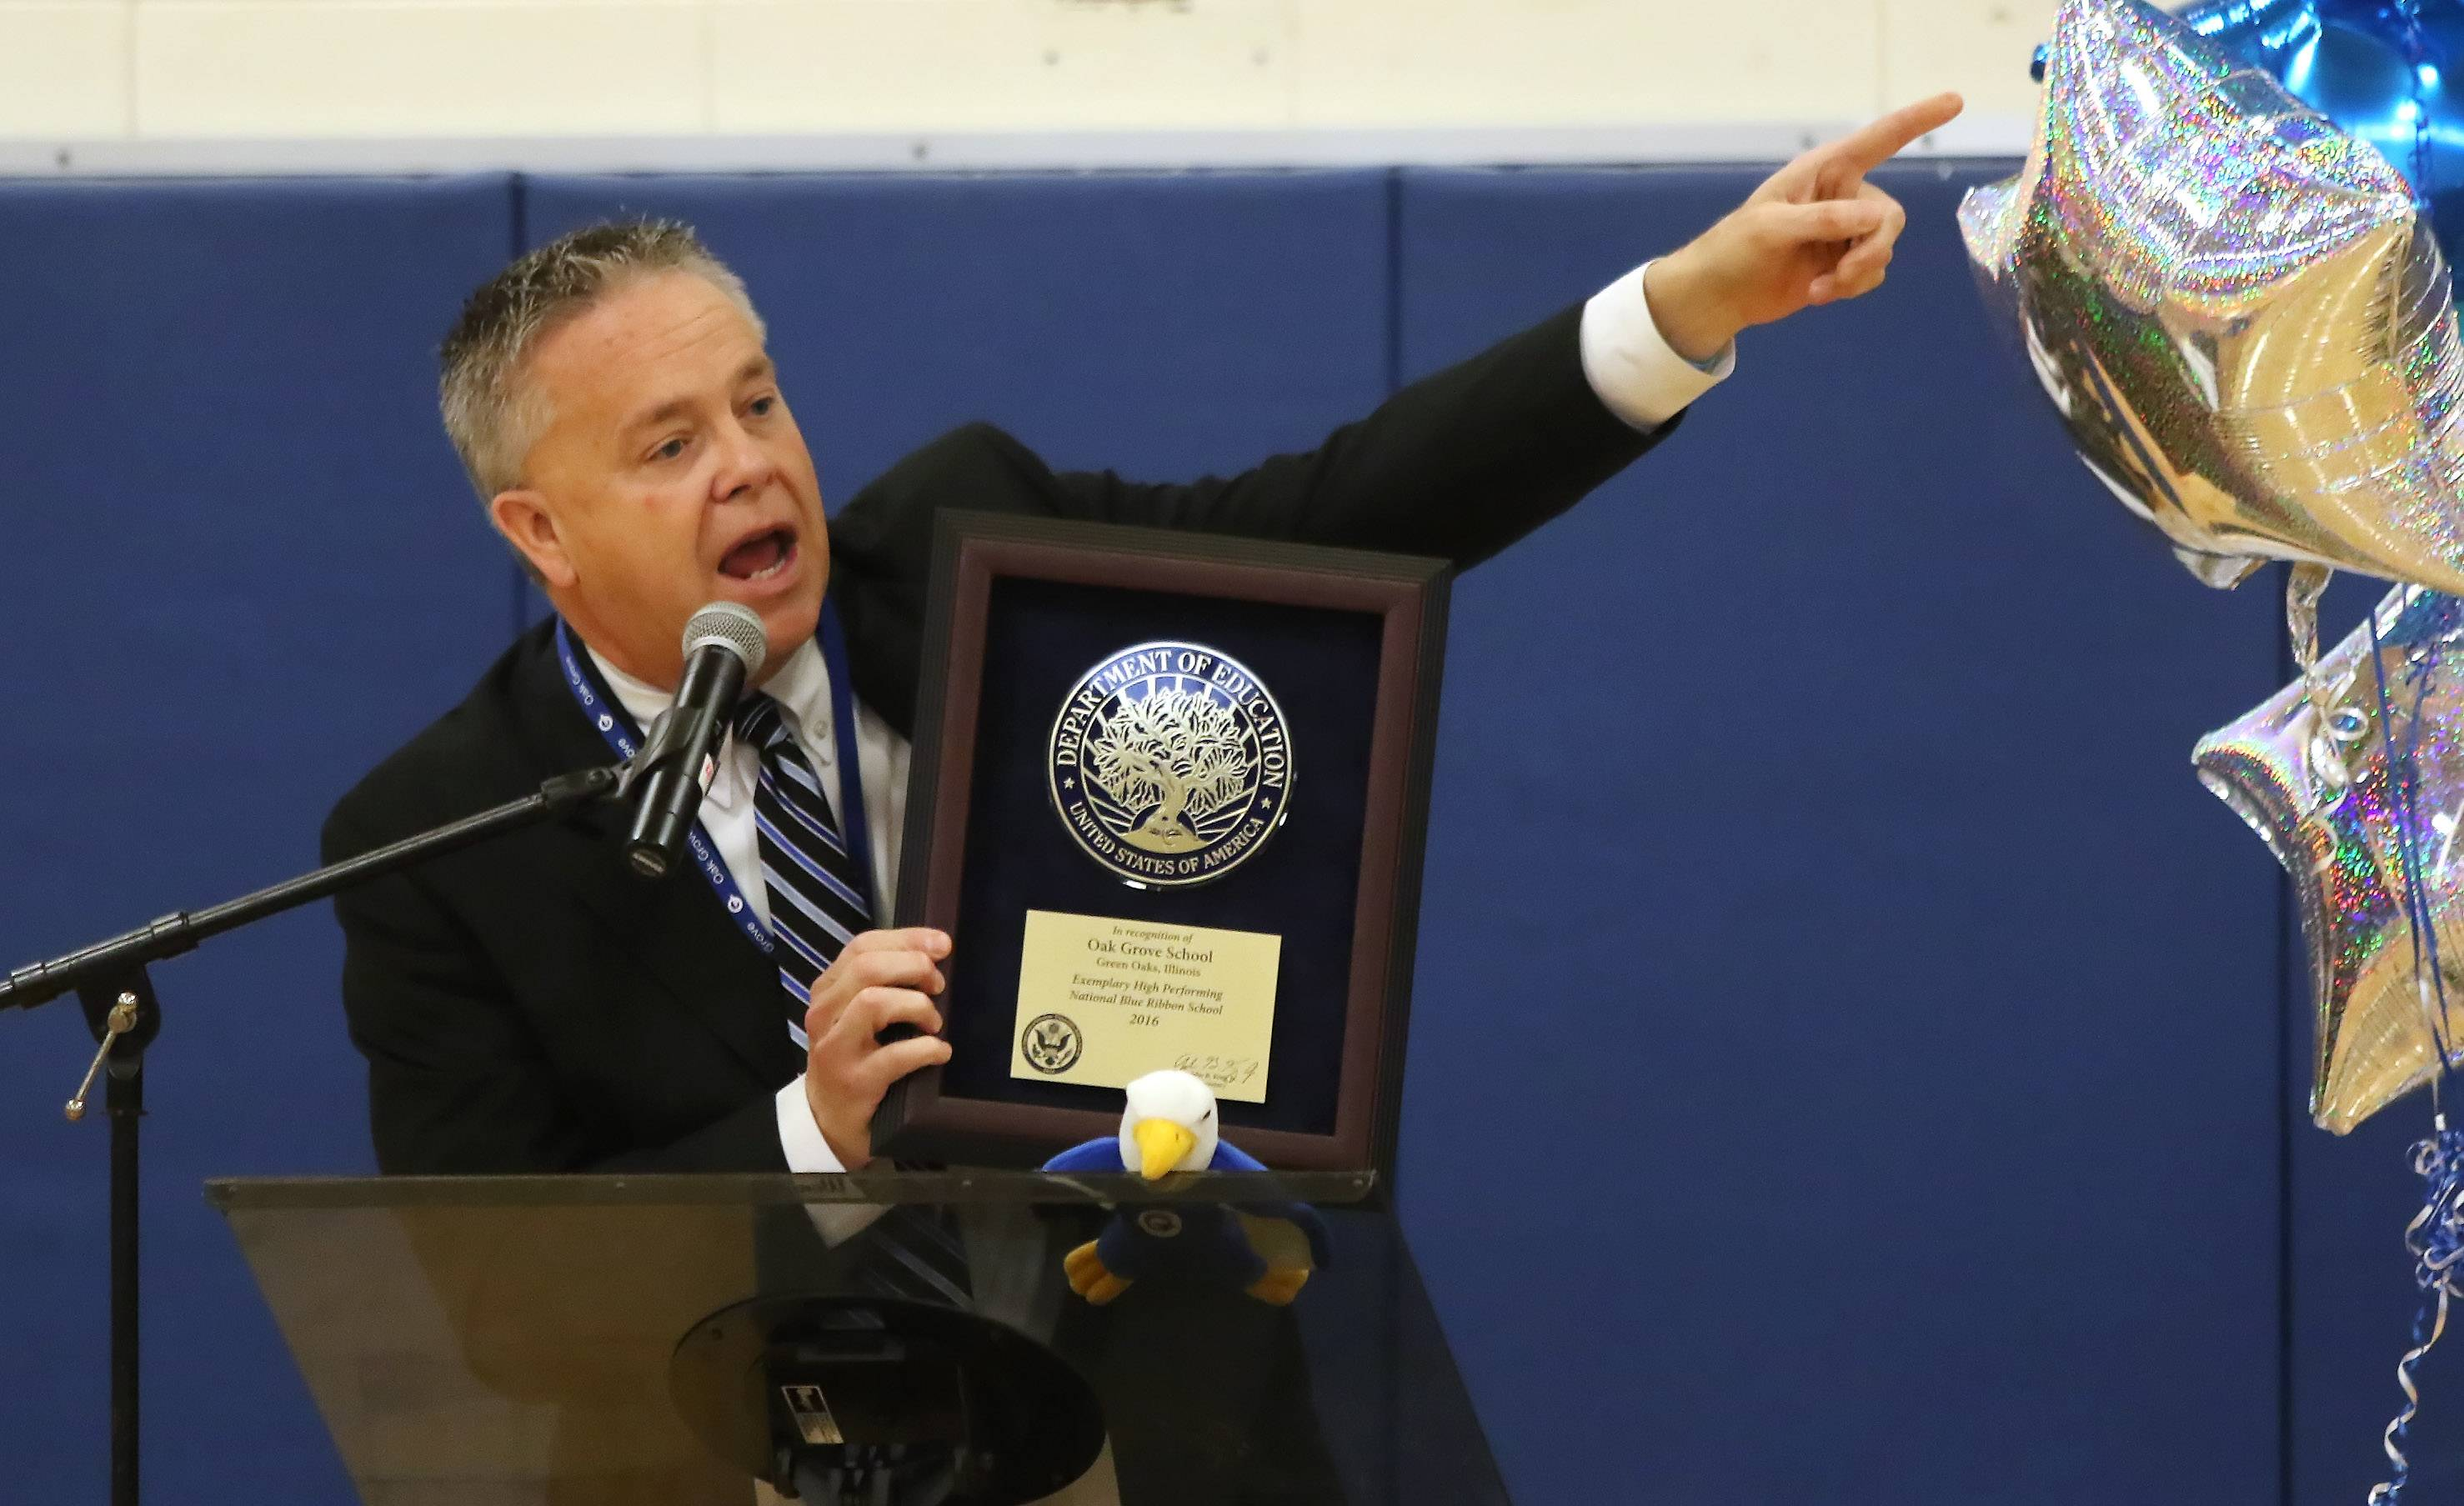 Superintendent Lonny Lemon displays a plaque recognizing Oak Grove School as a National Blue Ribbon School during an assembly in 2016. Lemon is retiring in 2020.